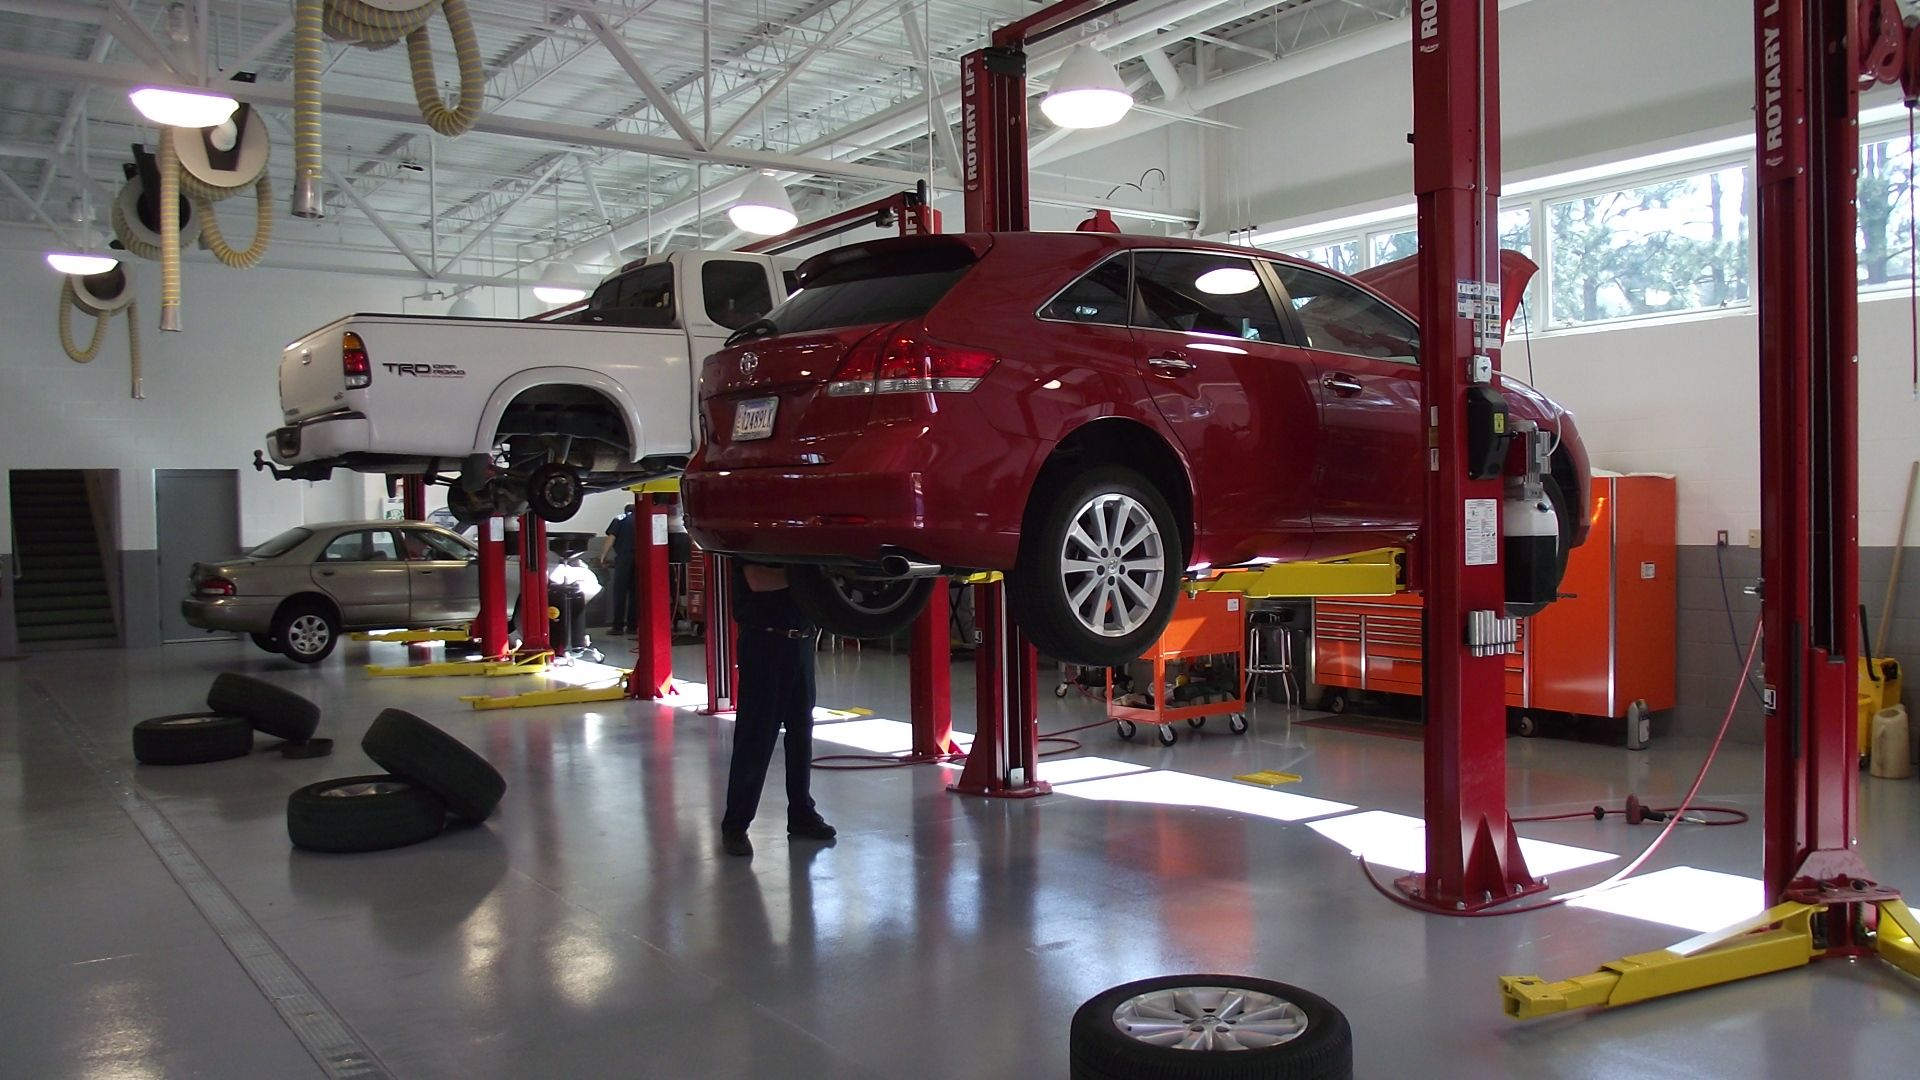 5 Tips for Choosing the Right Car repair service, Auto